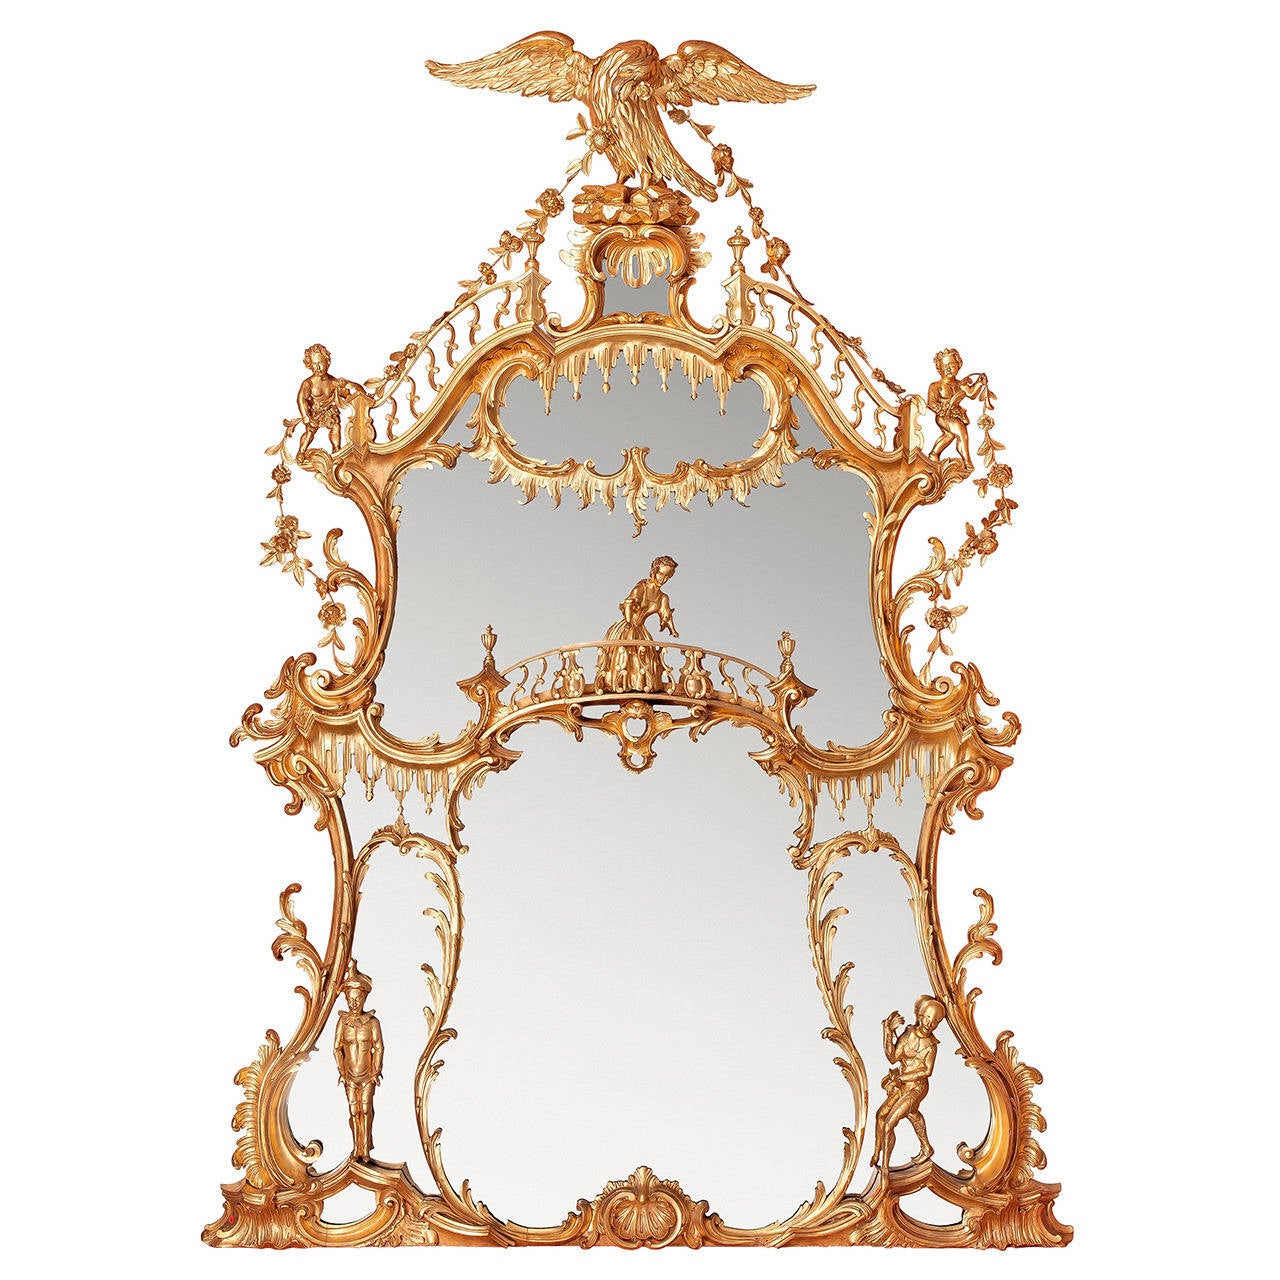 Large William IV period English gilt wood over-mantle mirror after Chippendale 1